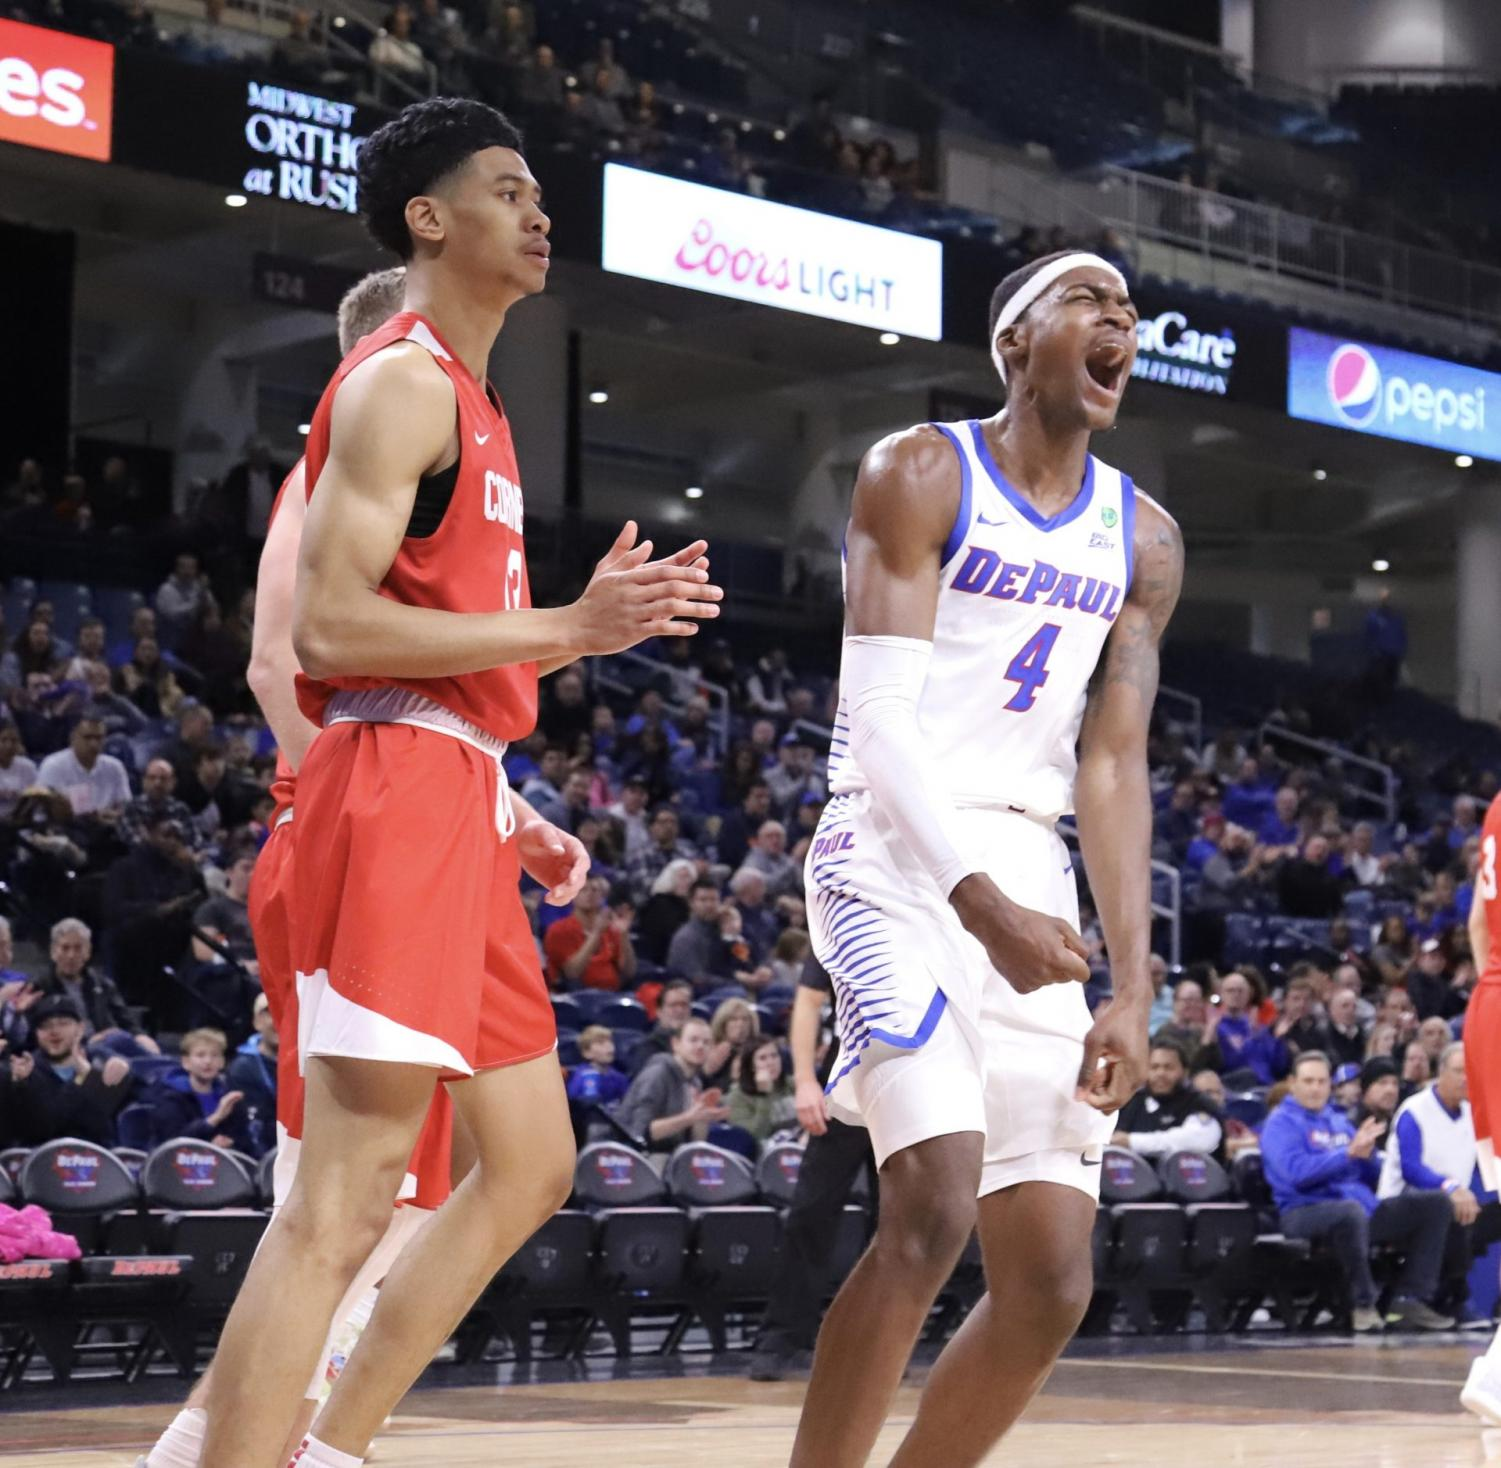 DePaul junior forward Paul Reed celebrates after a play in the second half against Cornell on Nov. 16 at Wintrust Arena.